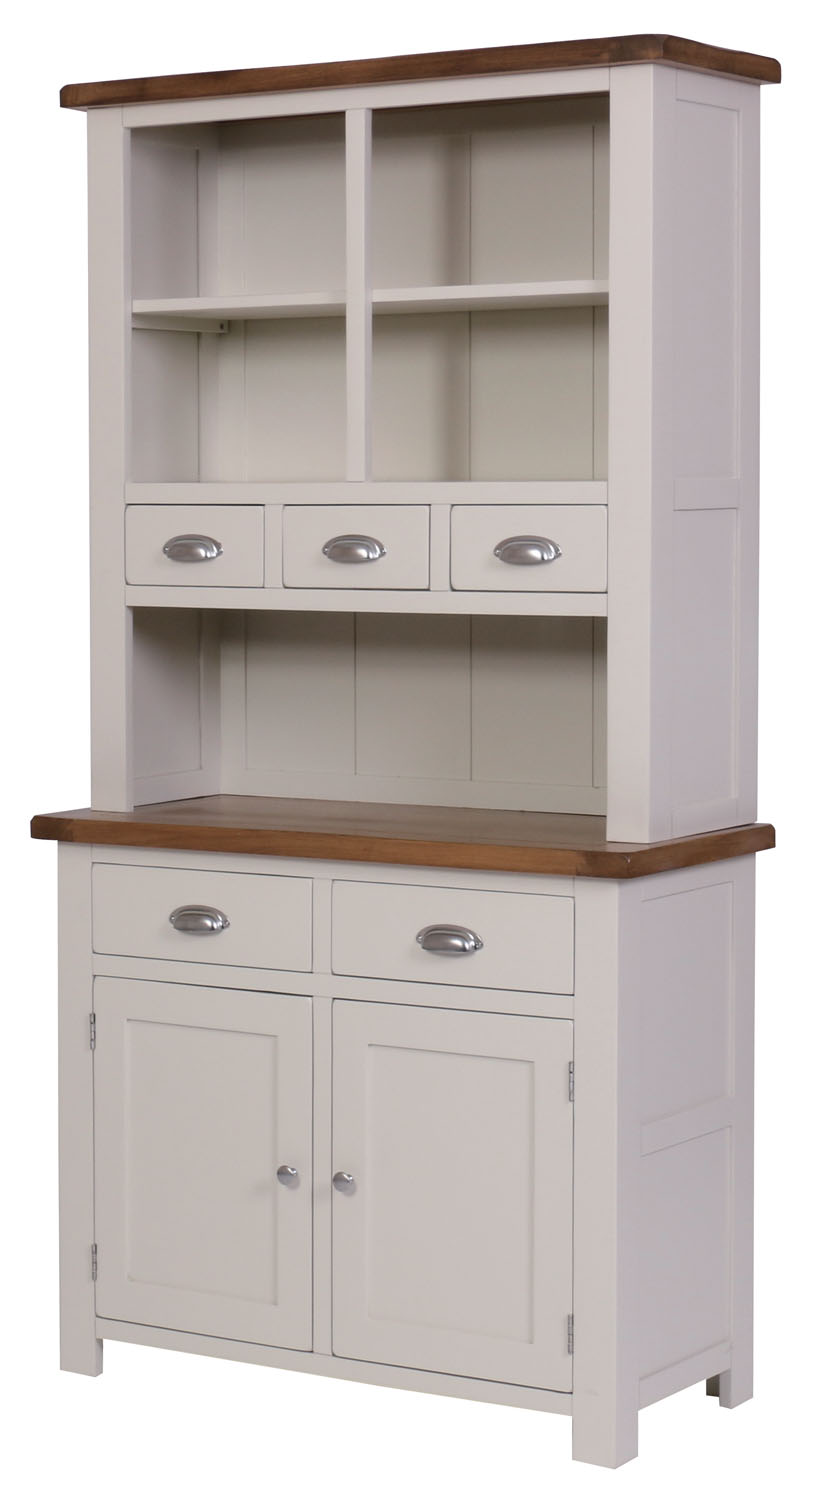 Ascot Painted Small Dresser - Sideboard with Top